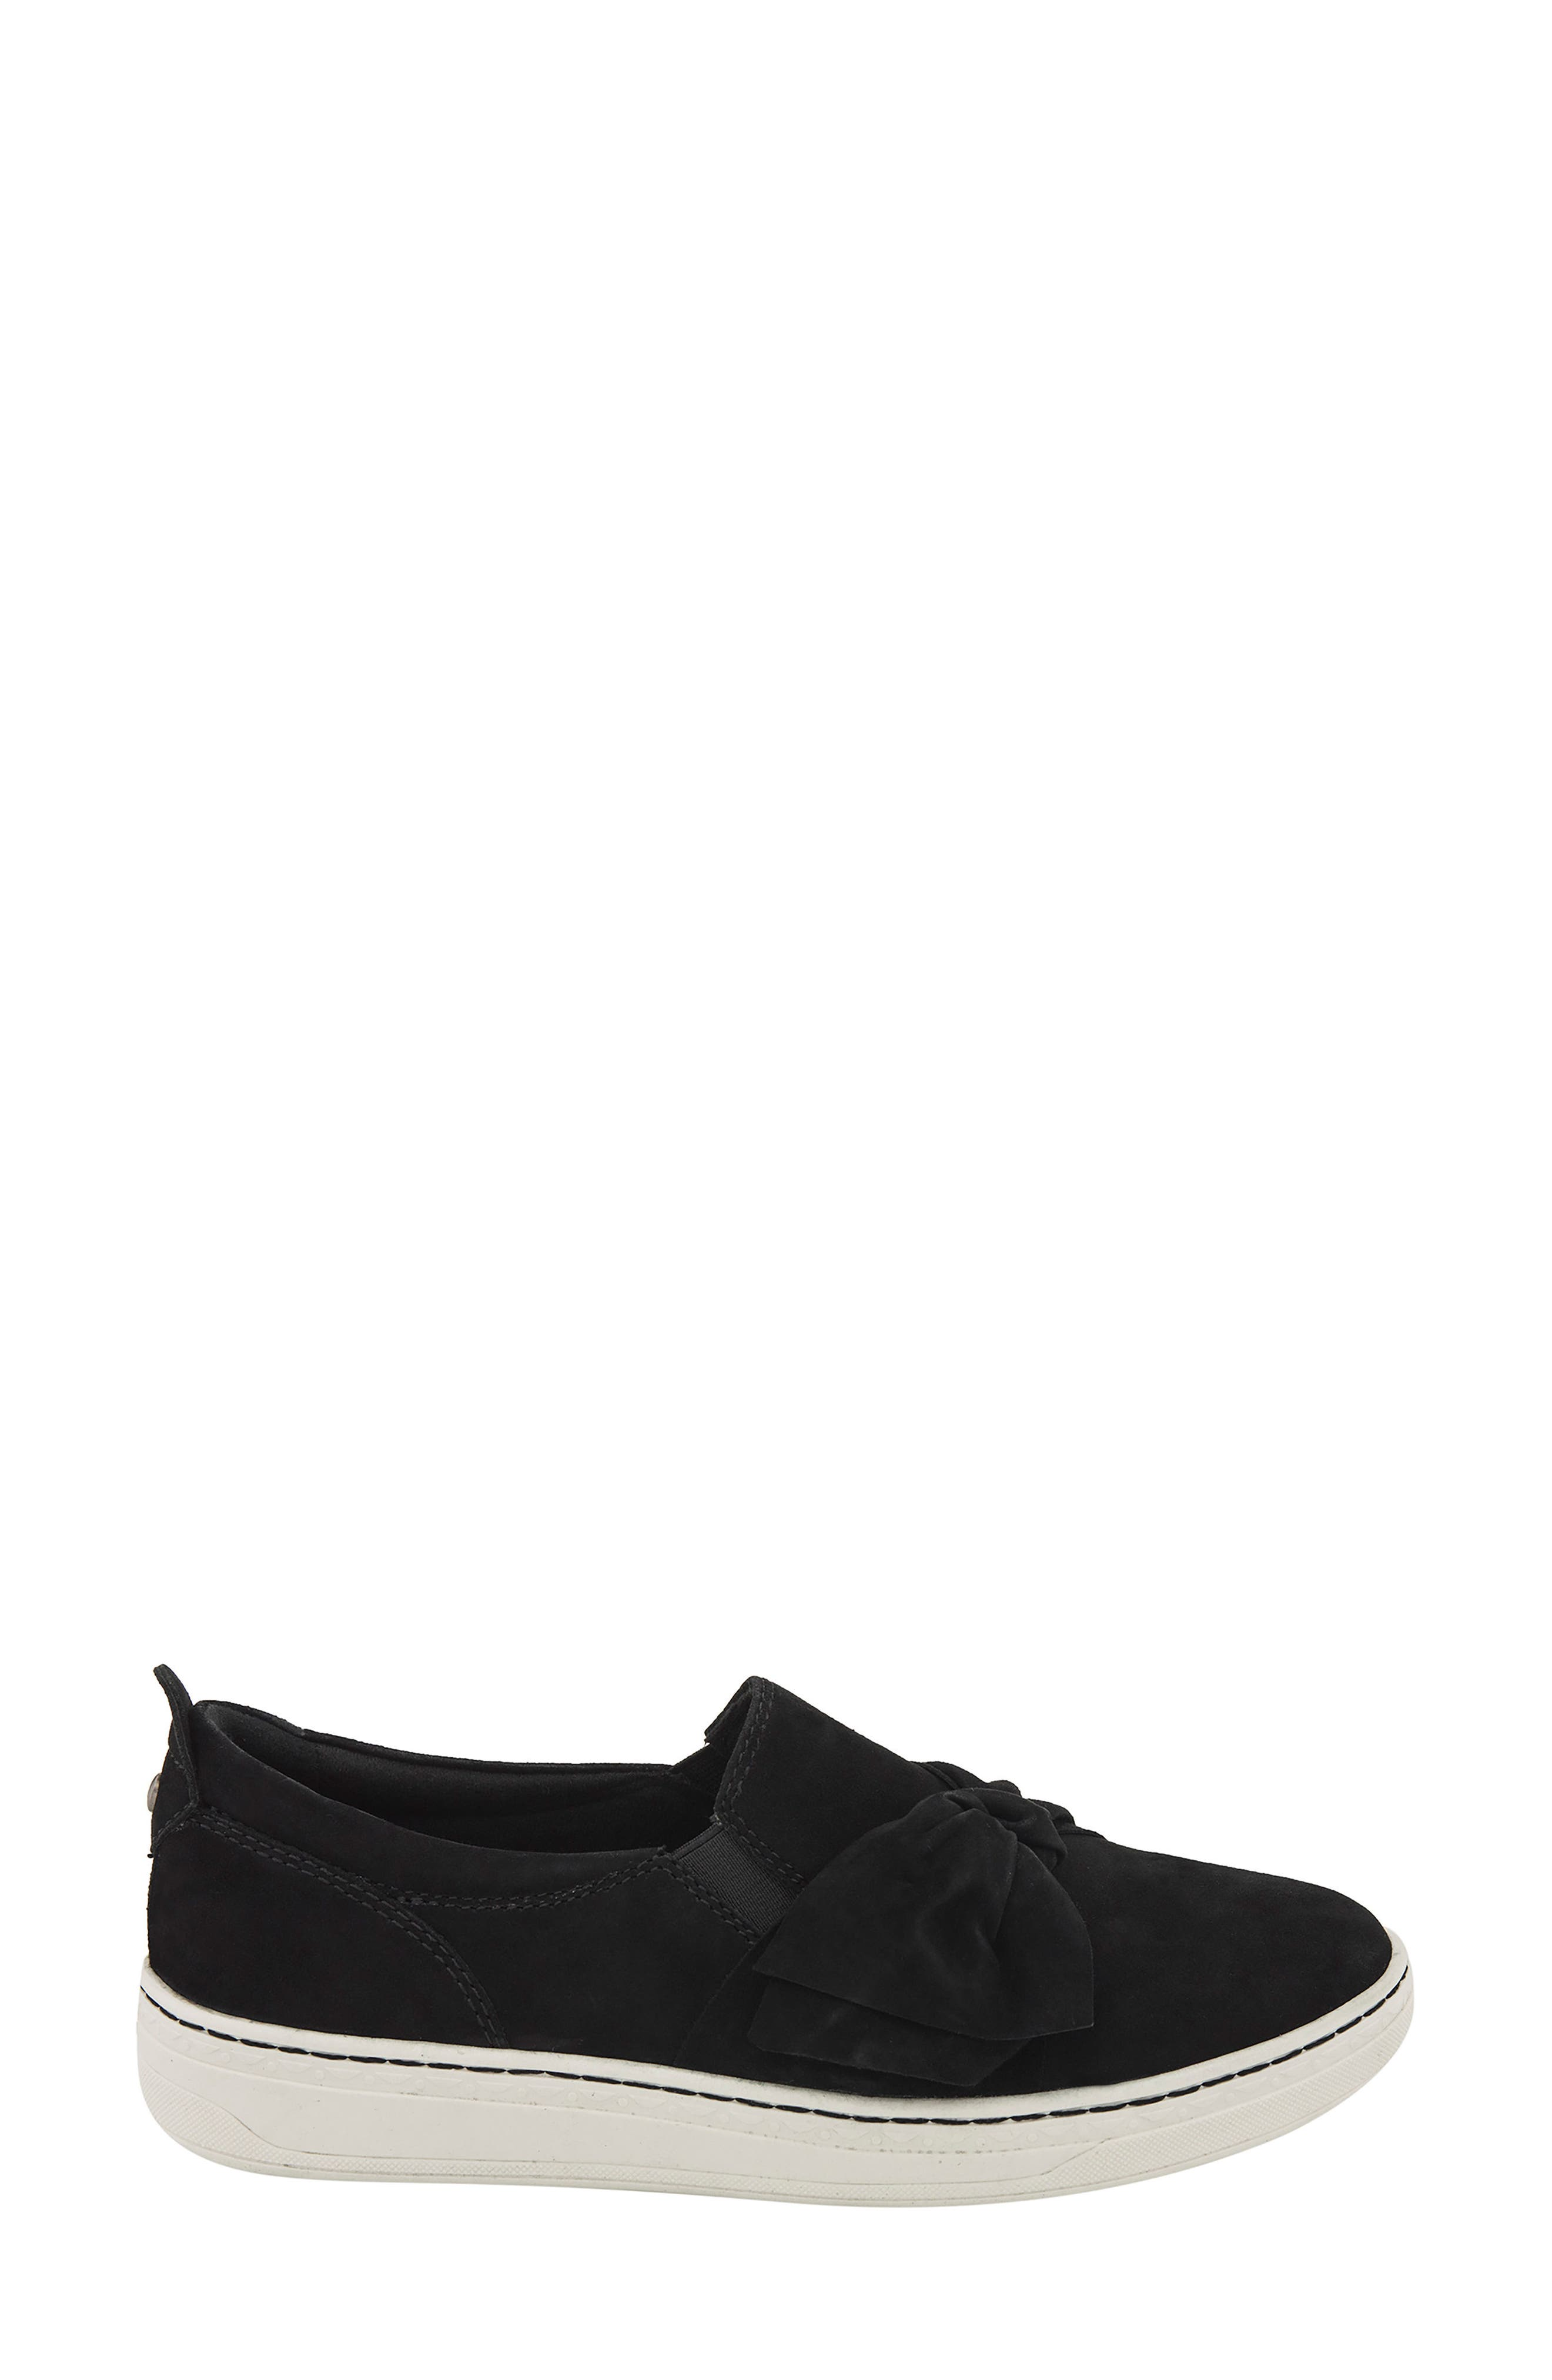 Zoey Slip-On,                             Alternate thumbnail 3, color,                             Black Suede Fabric